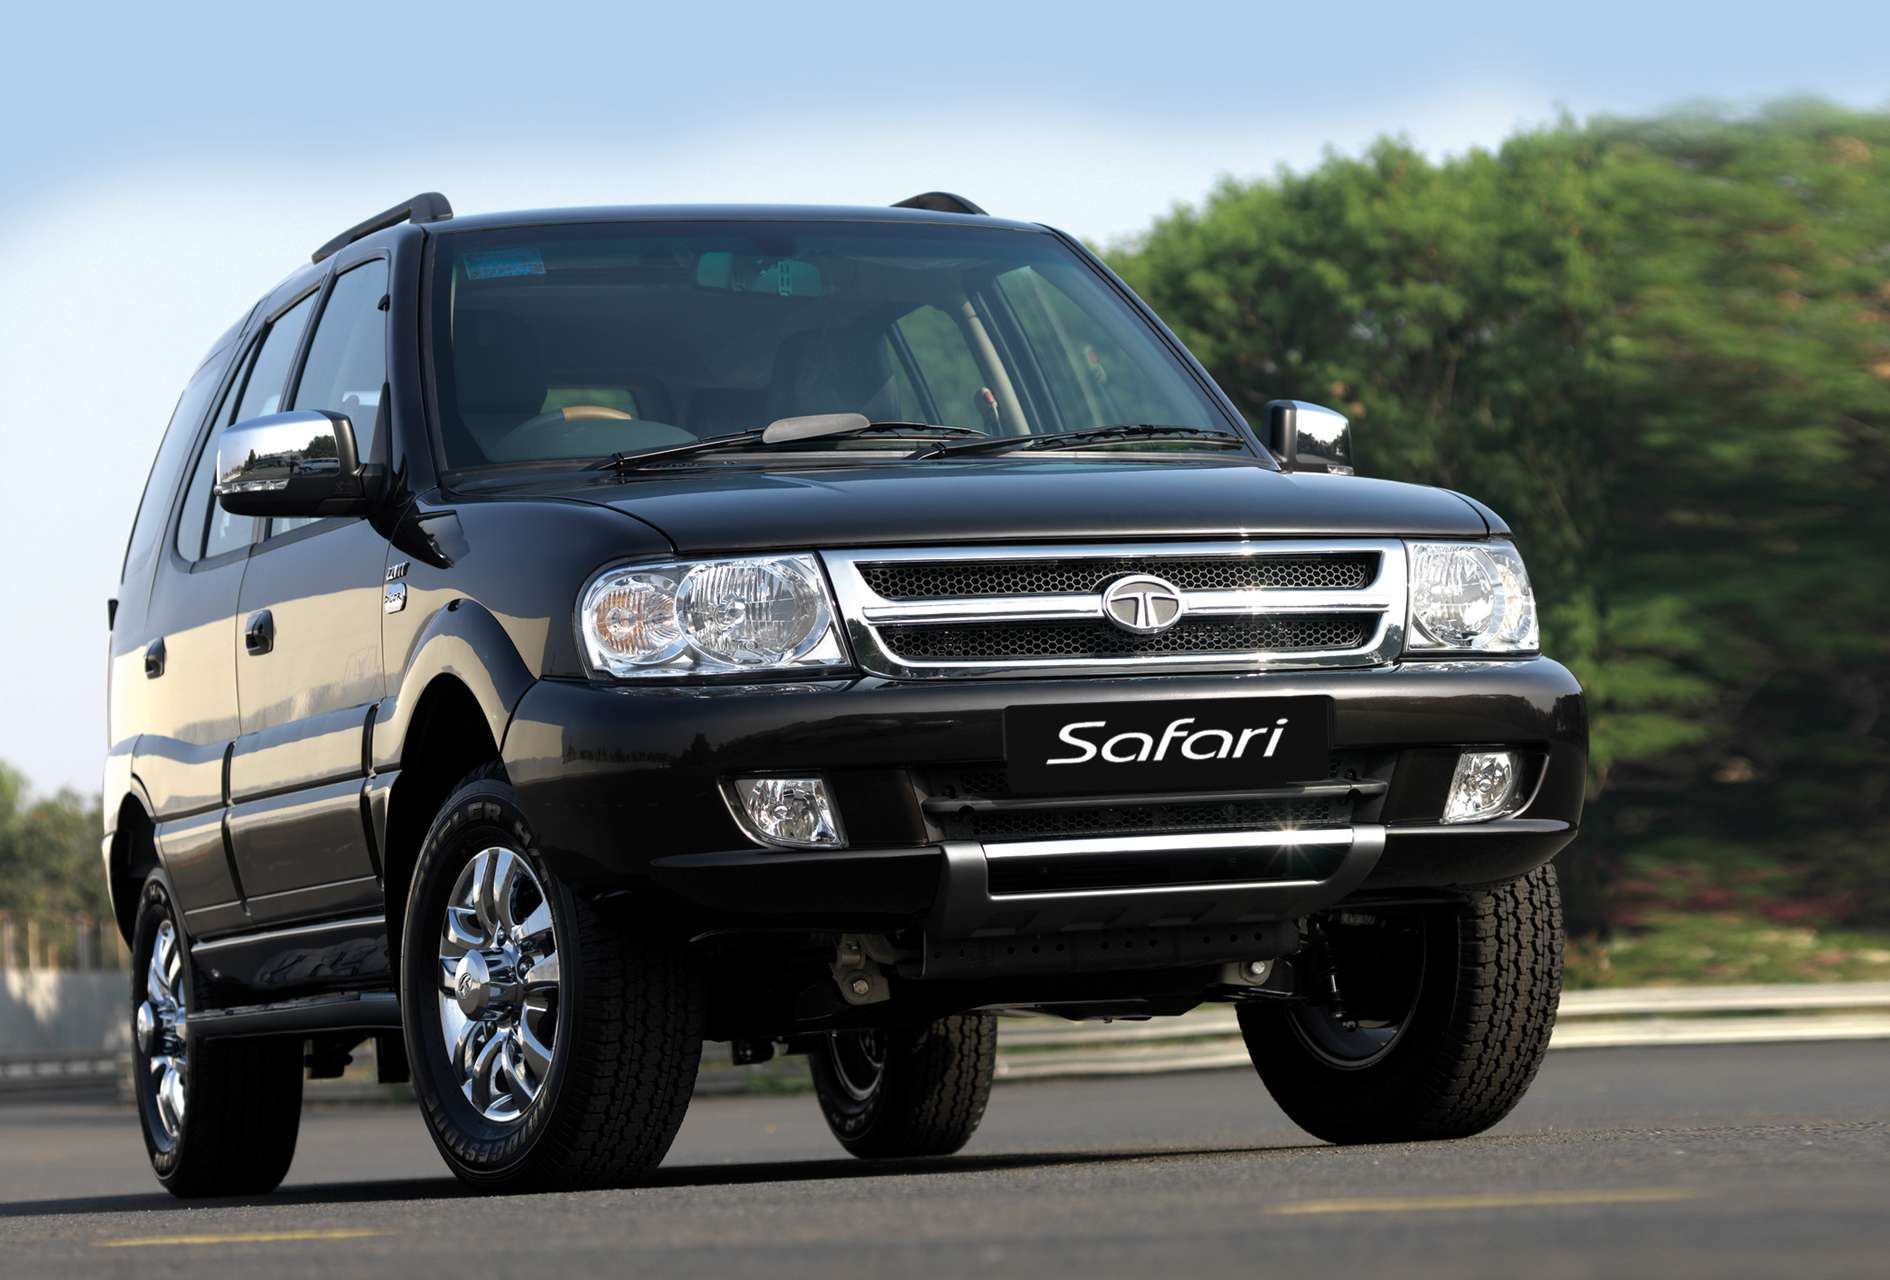 Tata Safari #9537002